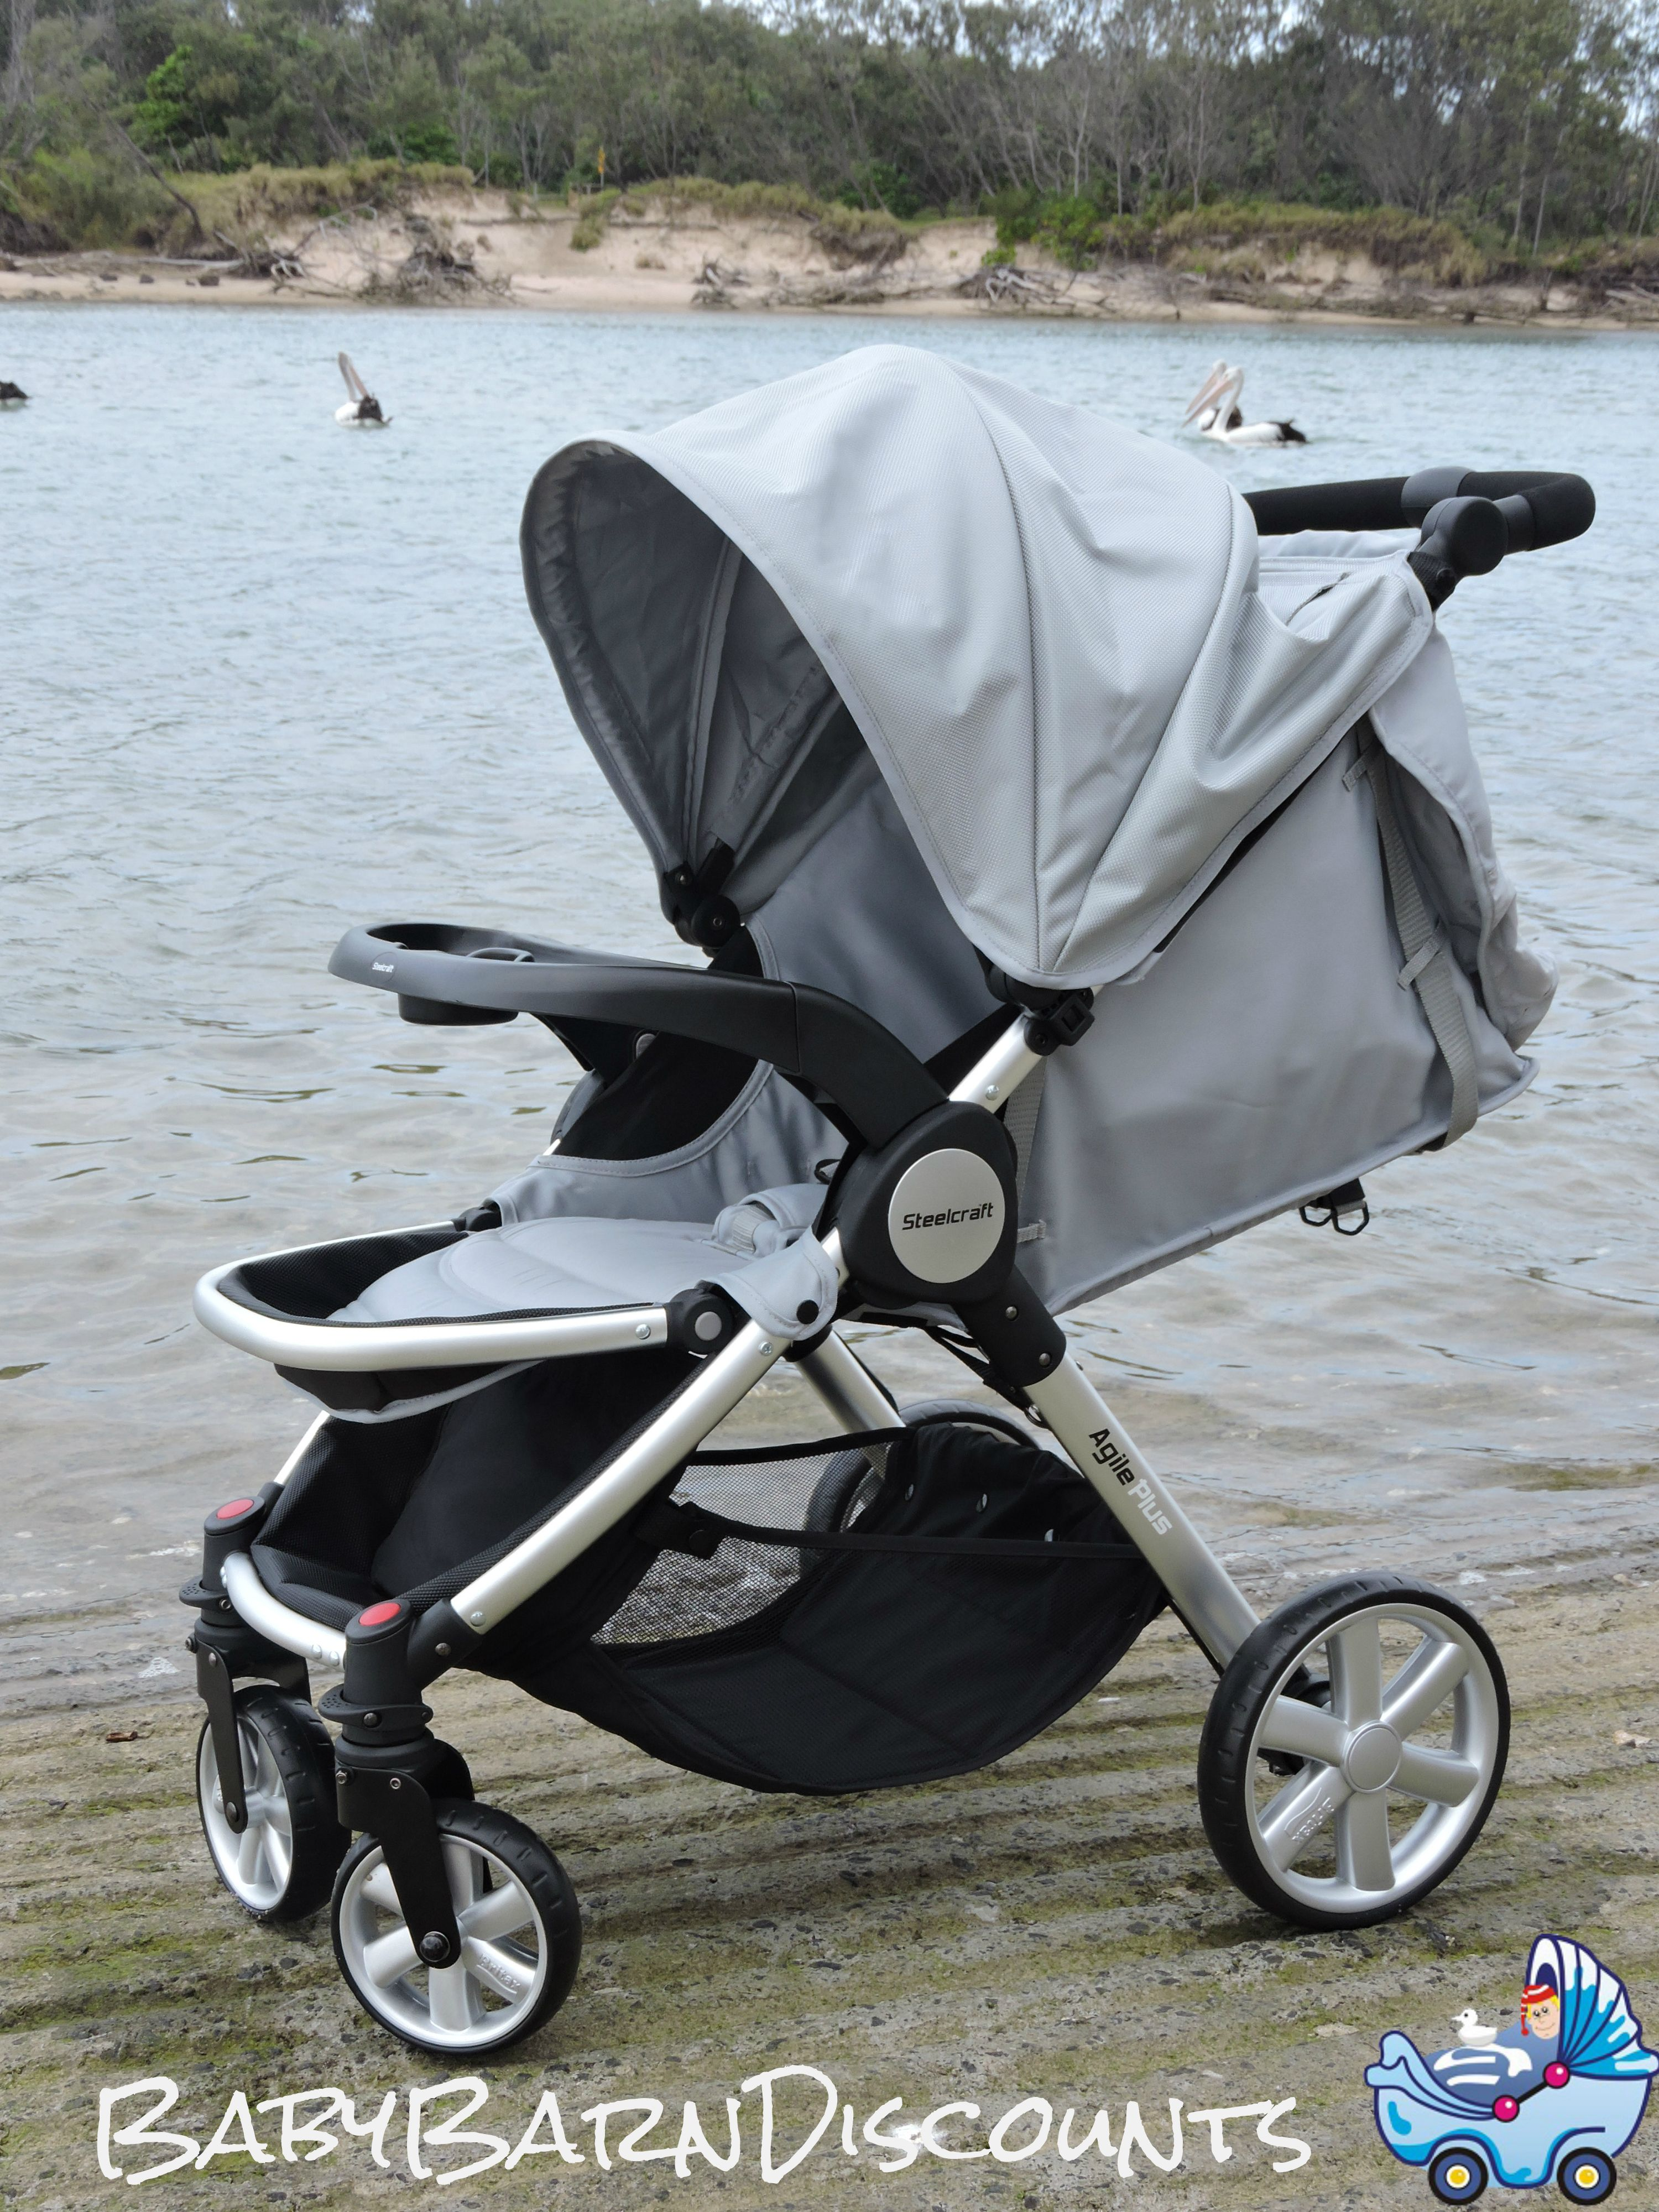 The Steelcraft Agile Plus is a lightweight quick fold travel system stroller designed for